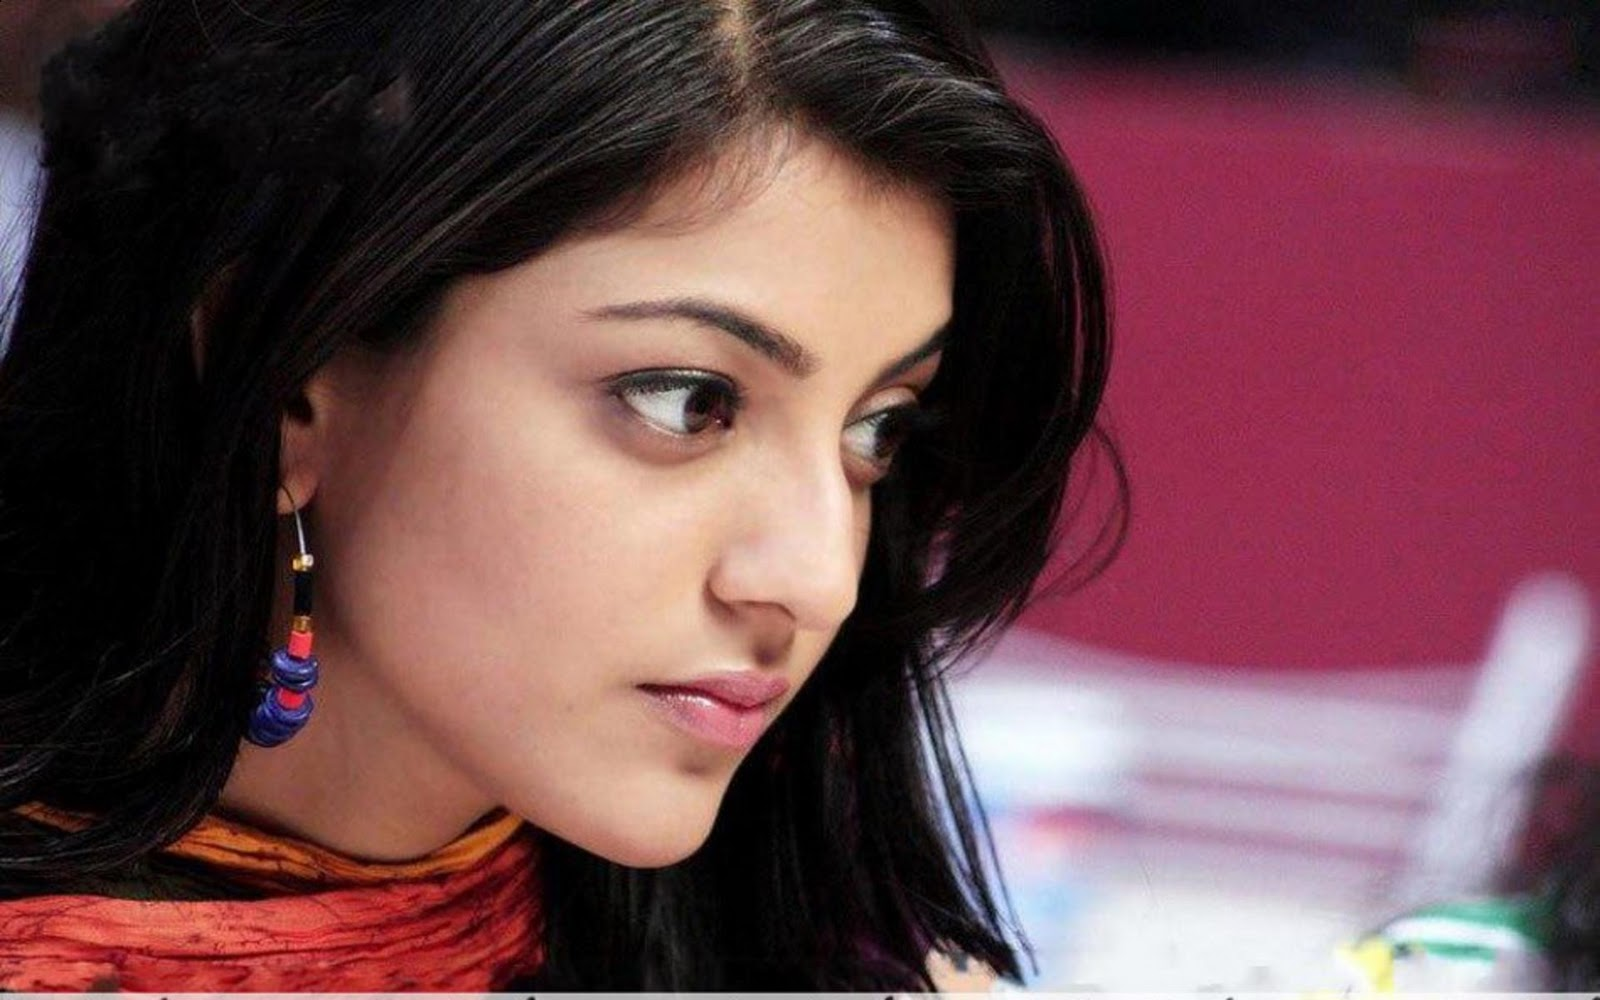 kajal agarwal hot hd wallpapers 1366x768 ~ Fine HD Wallpapers ...